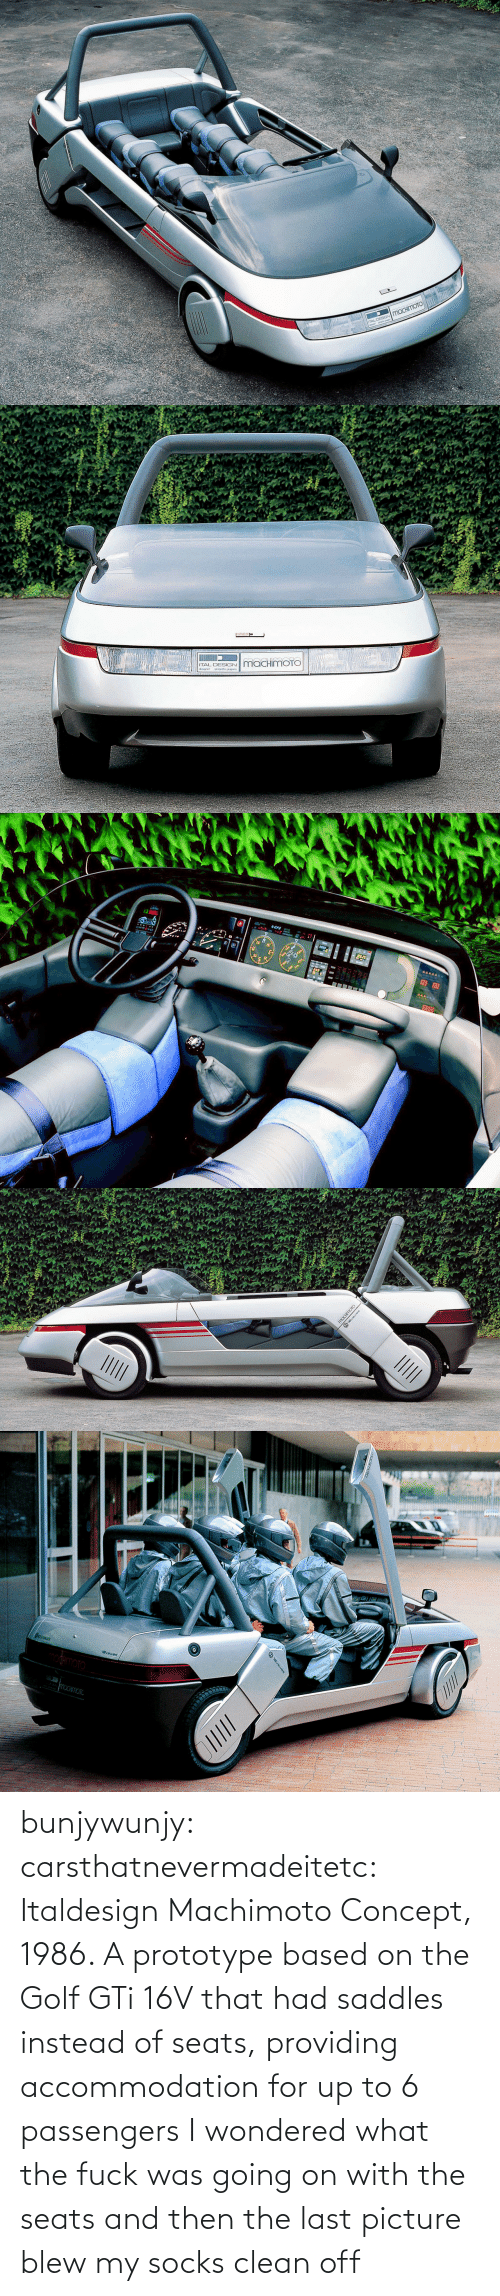 what the fuck: bunjywunjy:  carsthatnevermadeitetc:  Italdesign Machimoto Concept, 1986. A prototype based on the Golf GTi 16V that had saddles instead of seats, providing accommodation for up to 6 passengers   I wondered what the fuck was going on with the seats and then the last picture blew my socks clean off